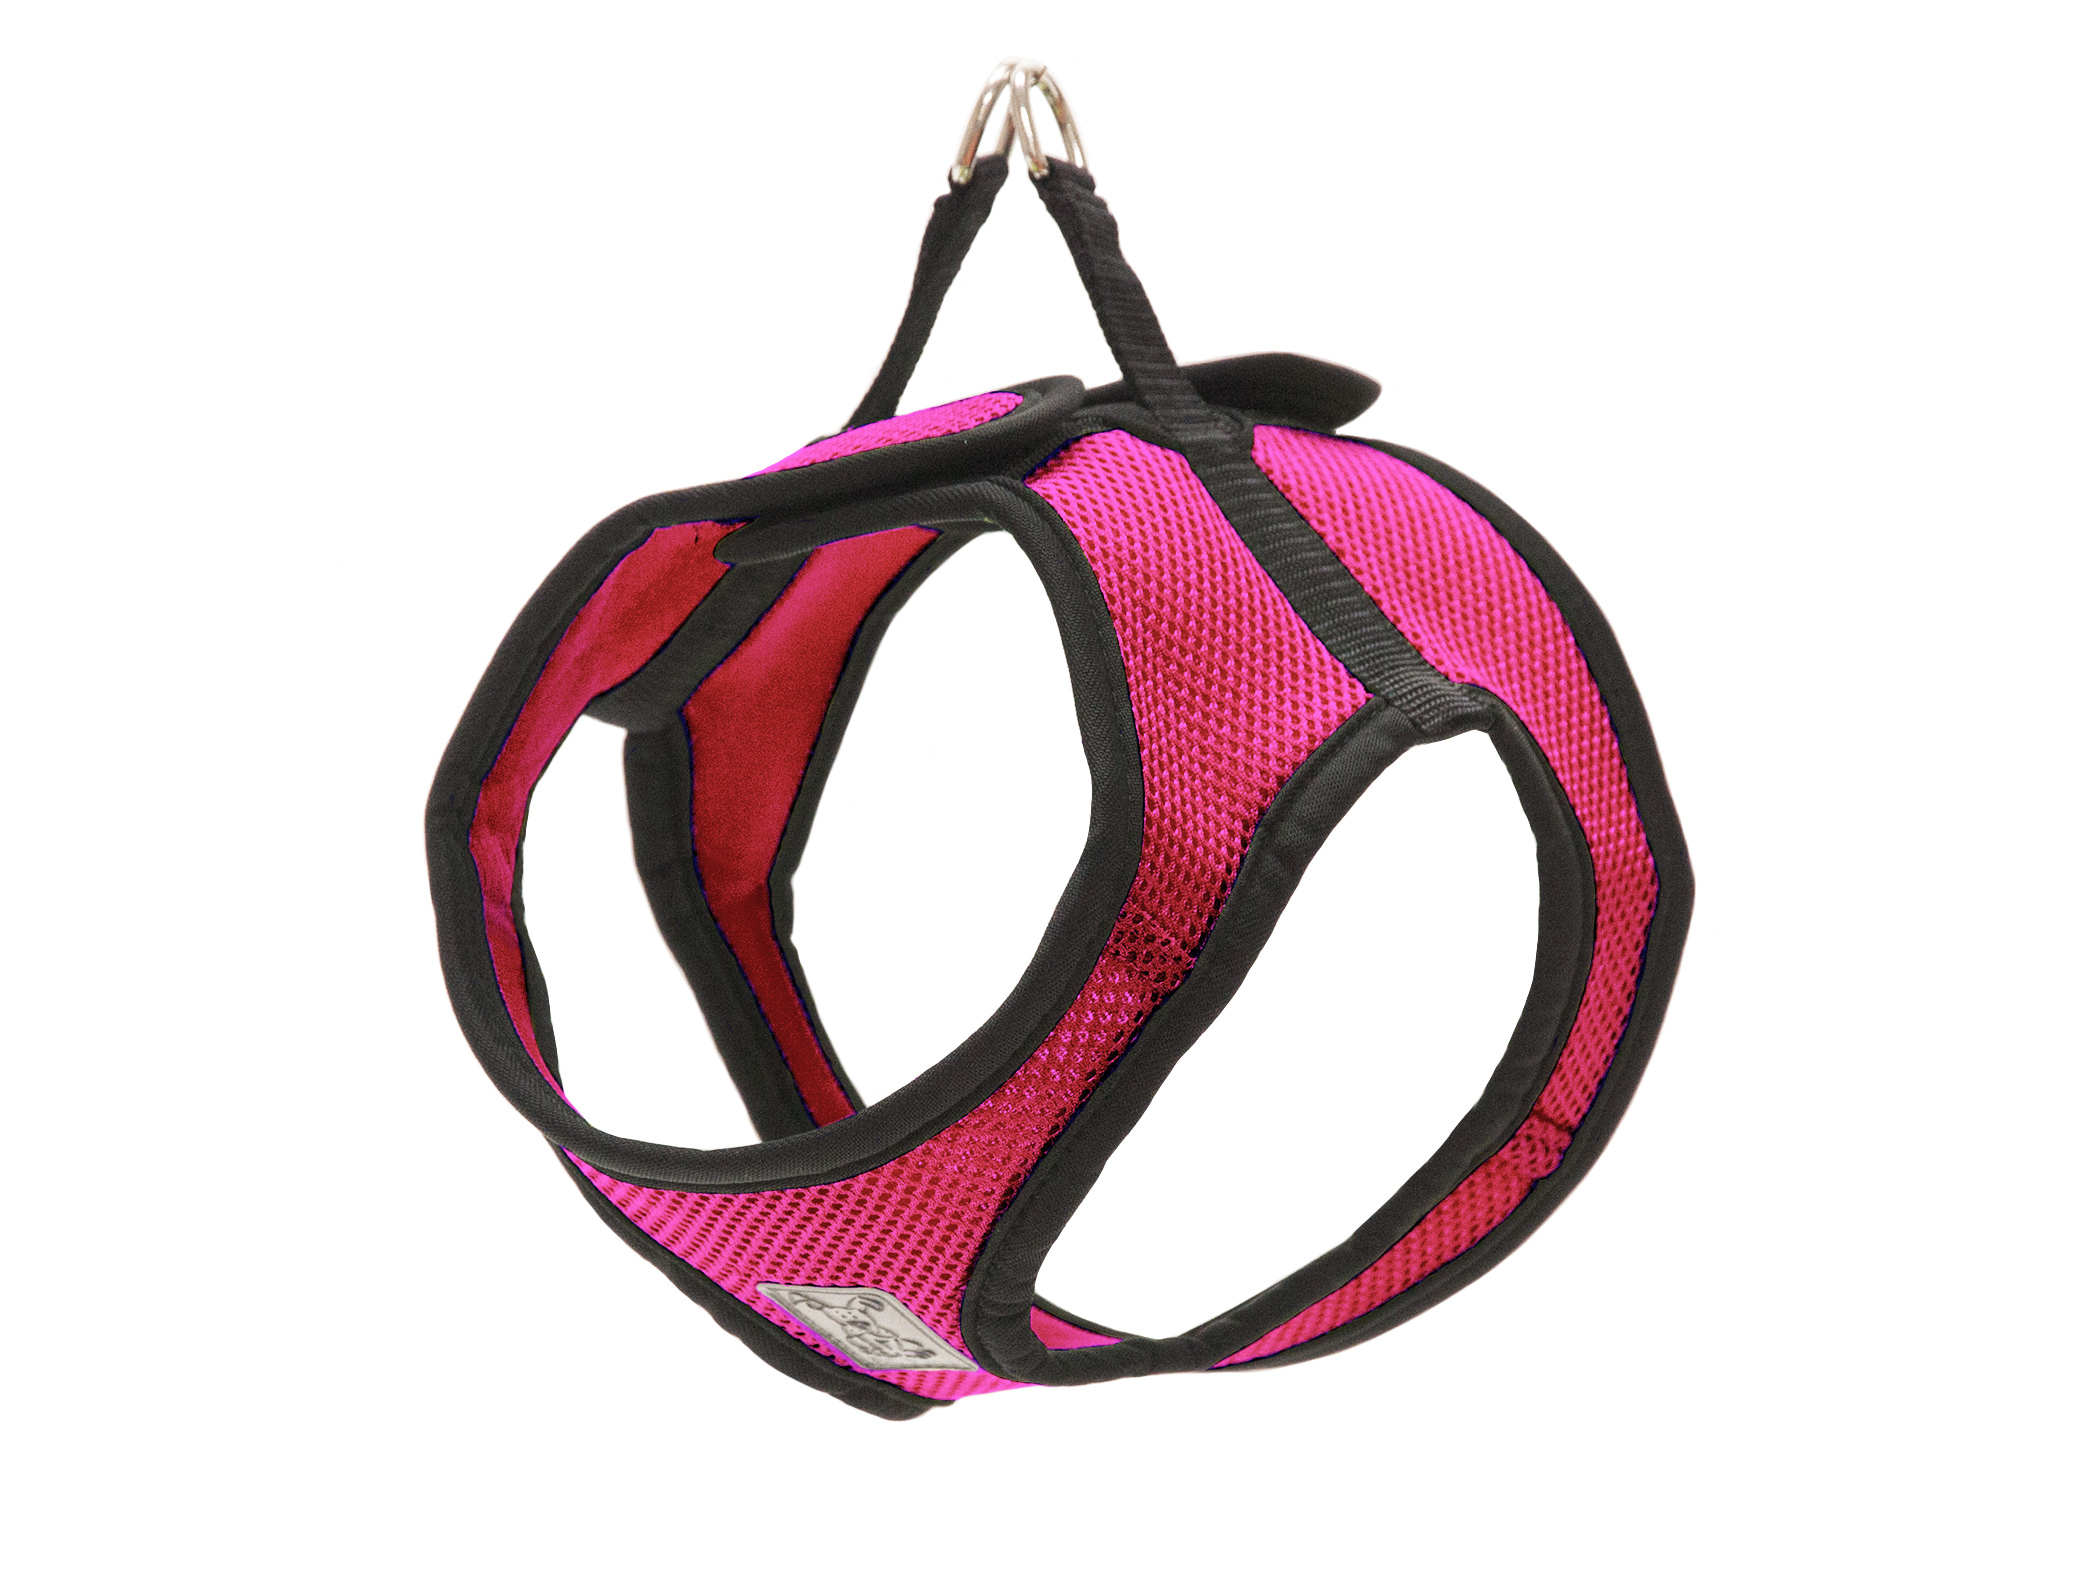 RC Pet ProductsStep-In Cirque Dog Harness, Raspberry, X-Large